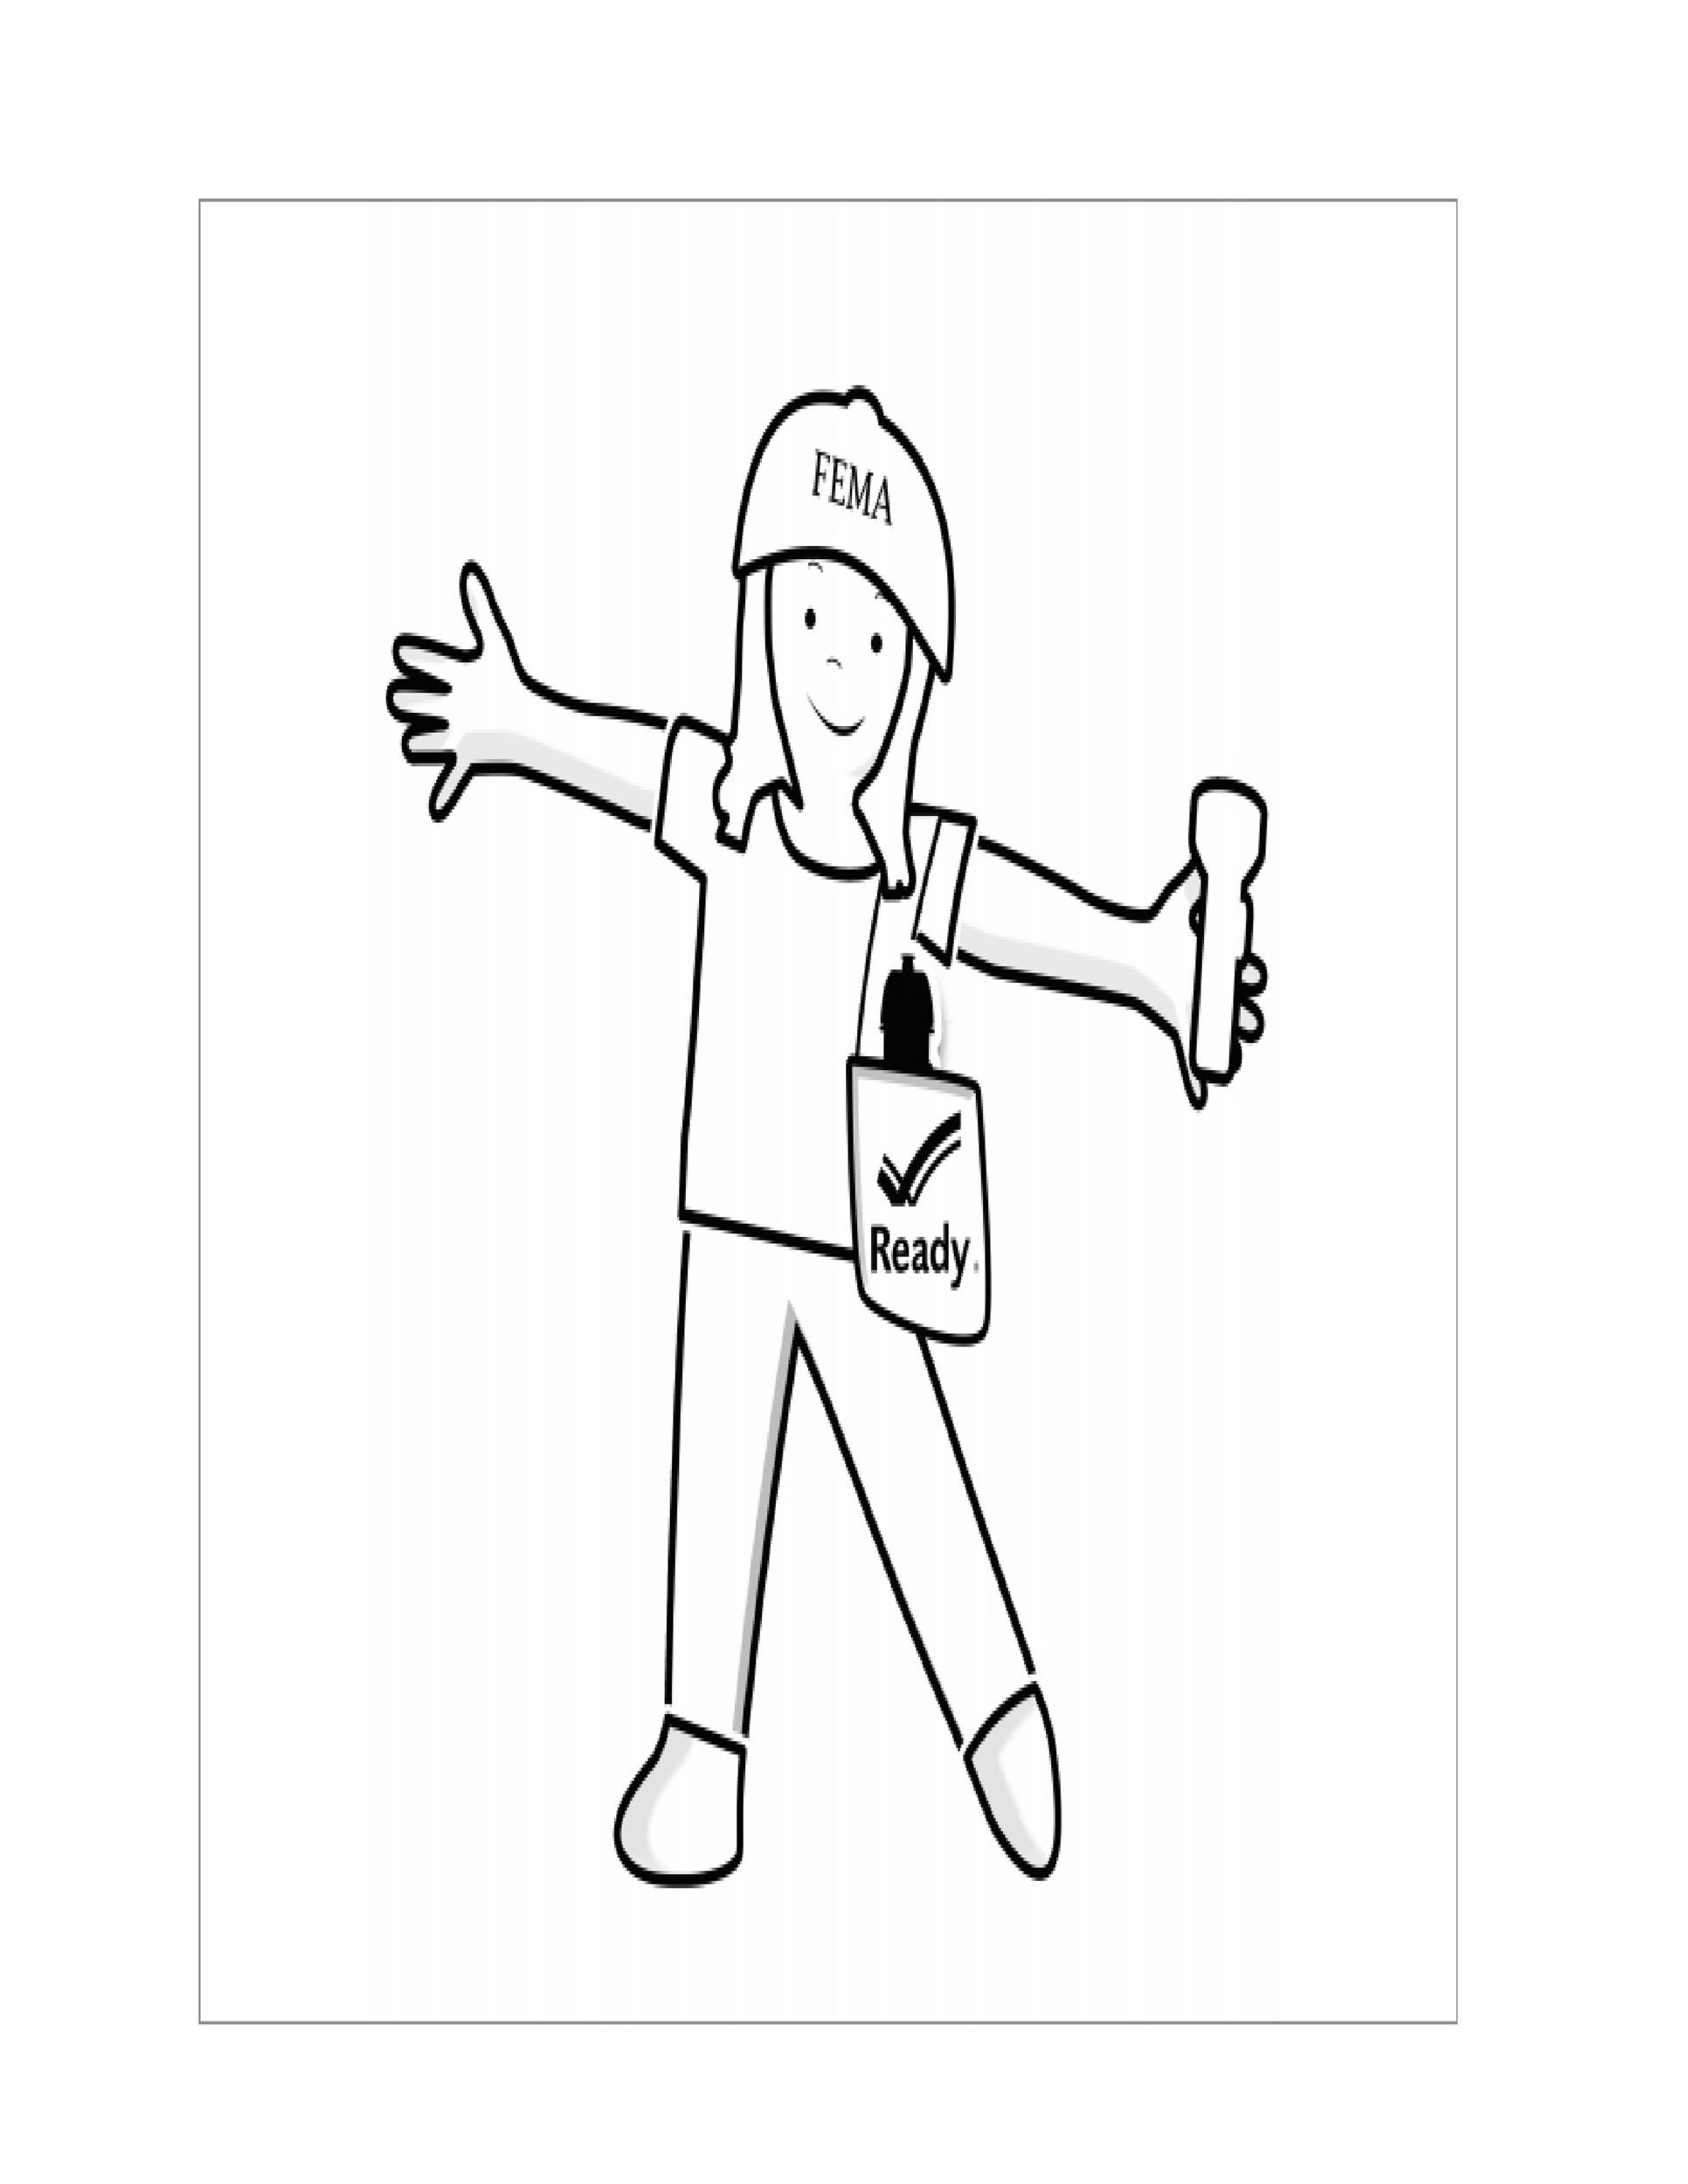 Flat Stanley Templates  Letter Examples  Template Lab